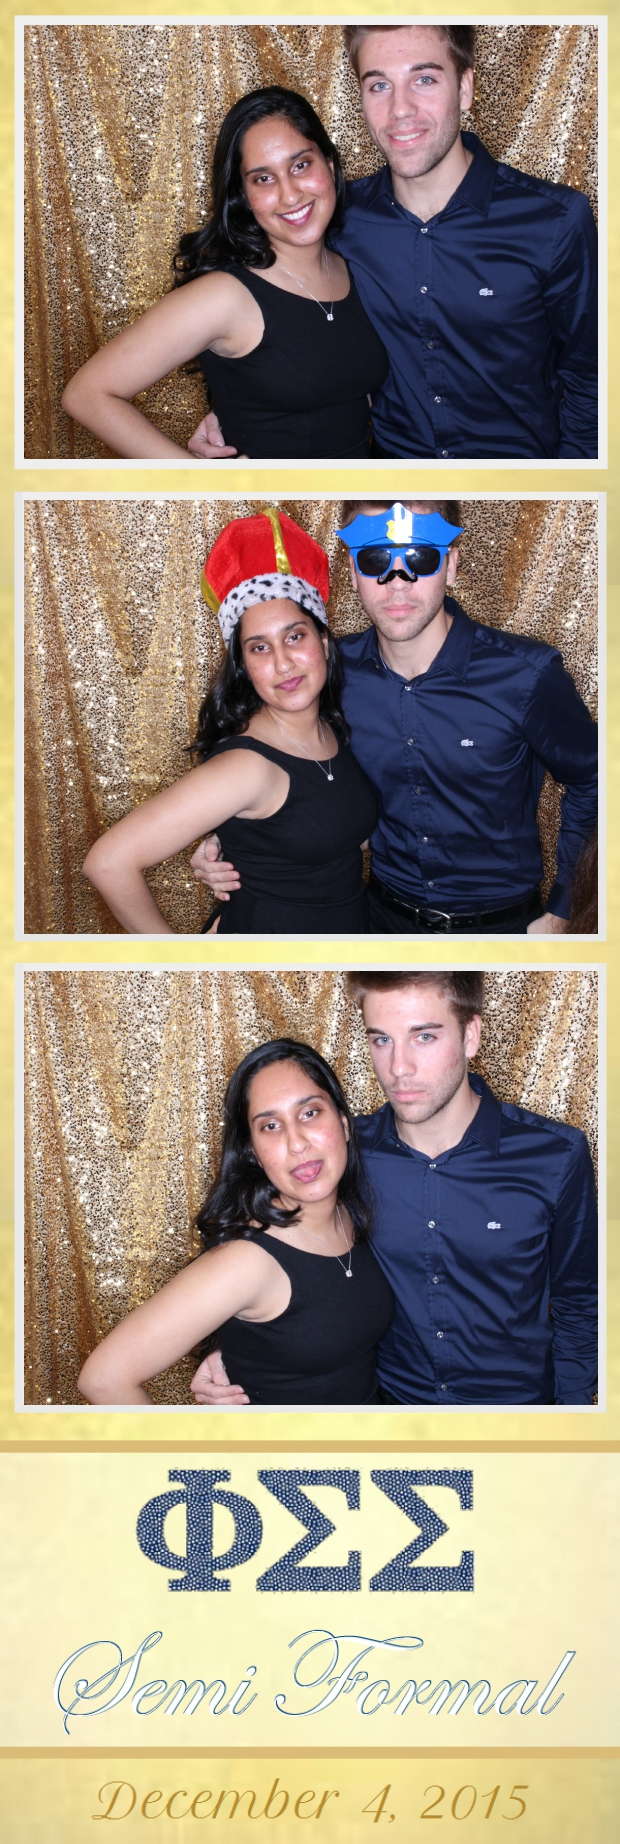 Guest House Events Photo Booth Phi Sigma Sigma Semi Formal (56).jpg